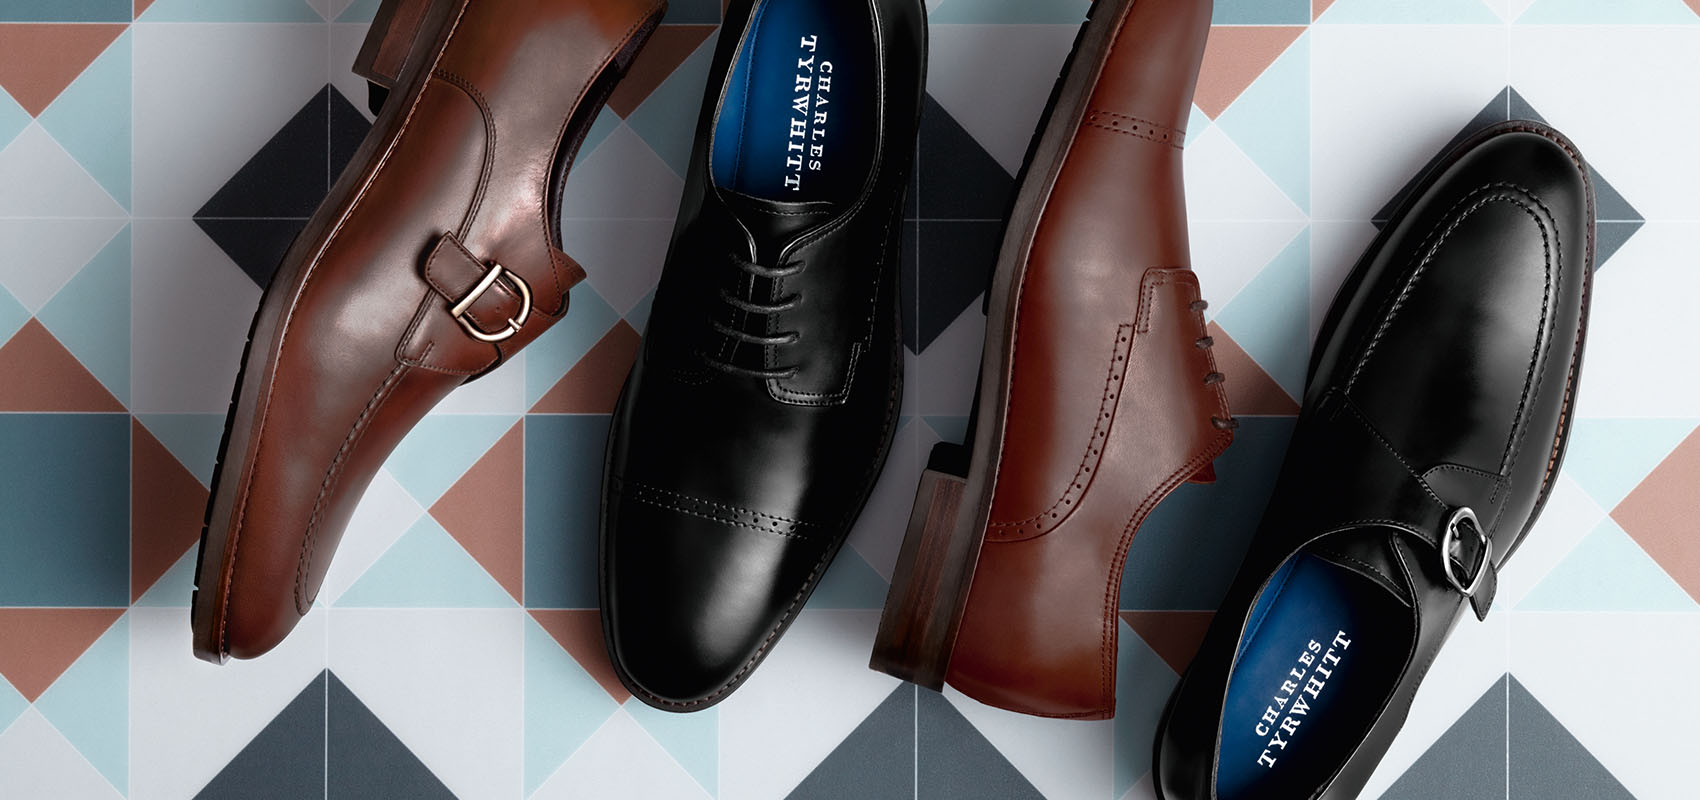 Charles Tyrwhitt Men's shoes